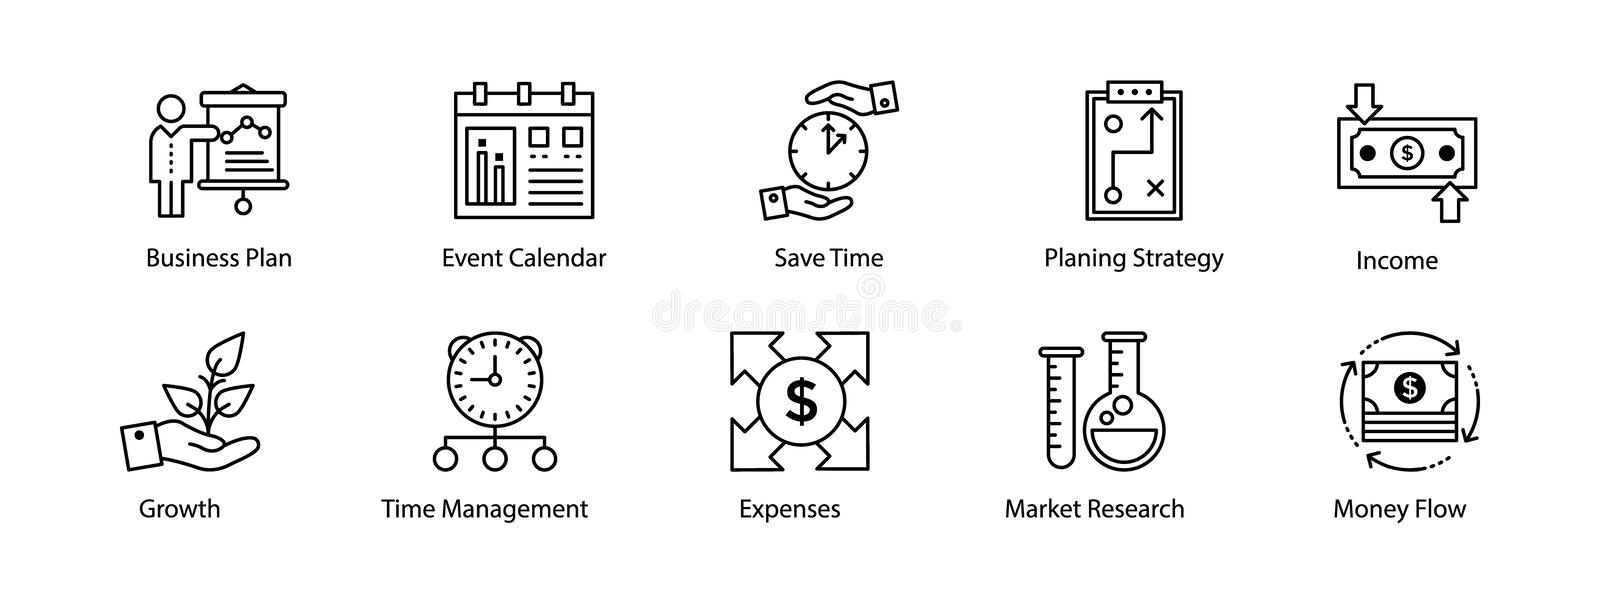 Line Icon of Business and Finance stock illustration